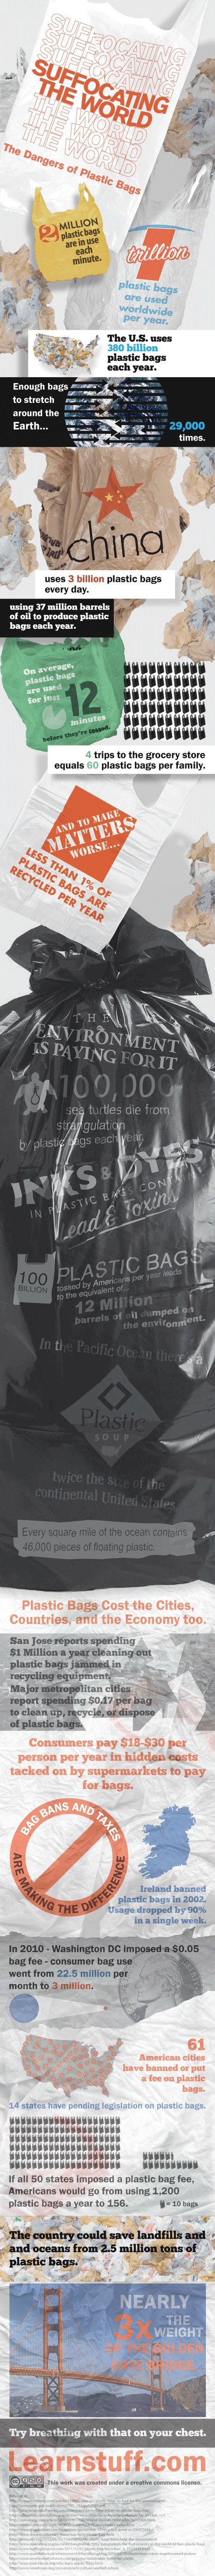 Ecology of Plastic Bags | Ecology | Scoop.it